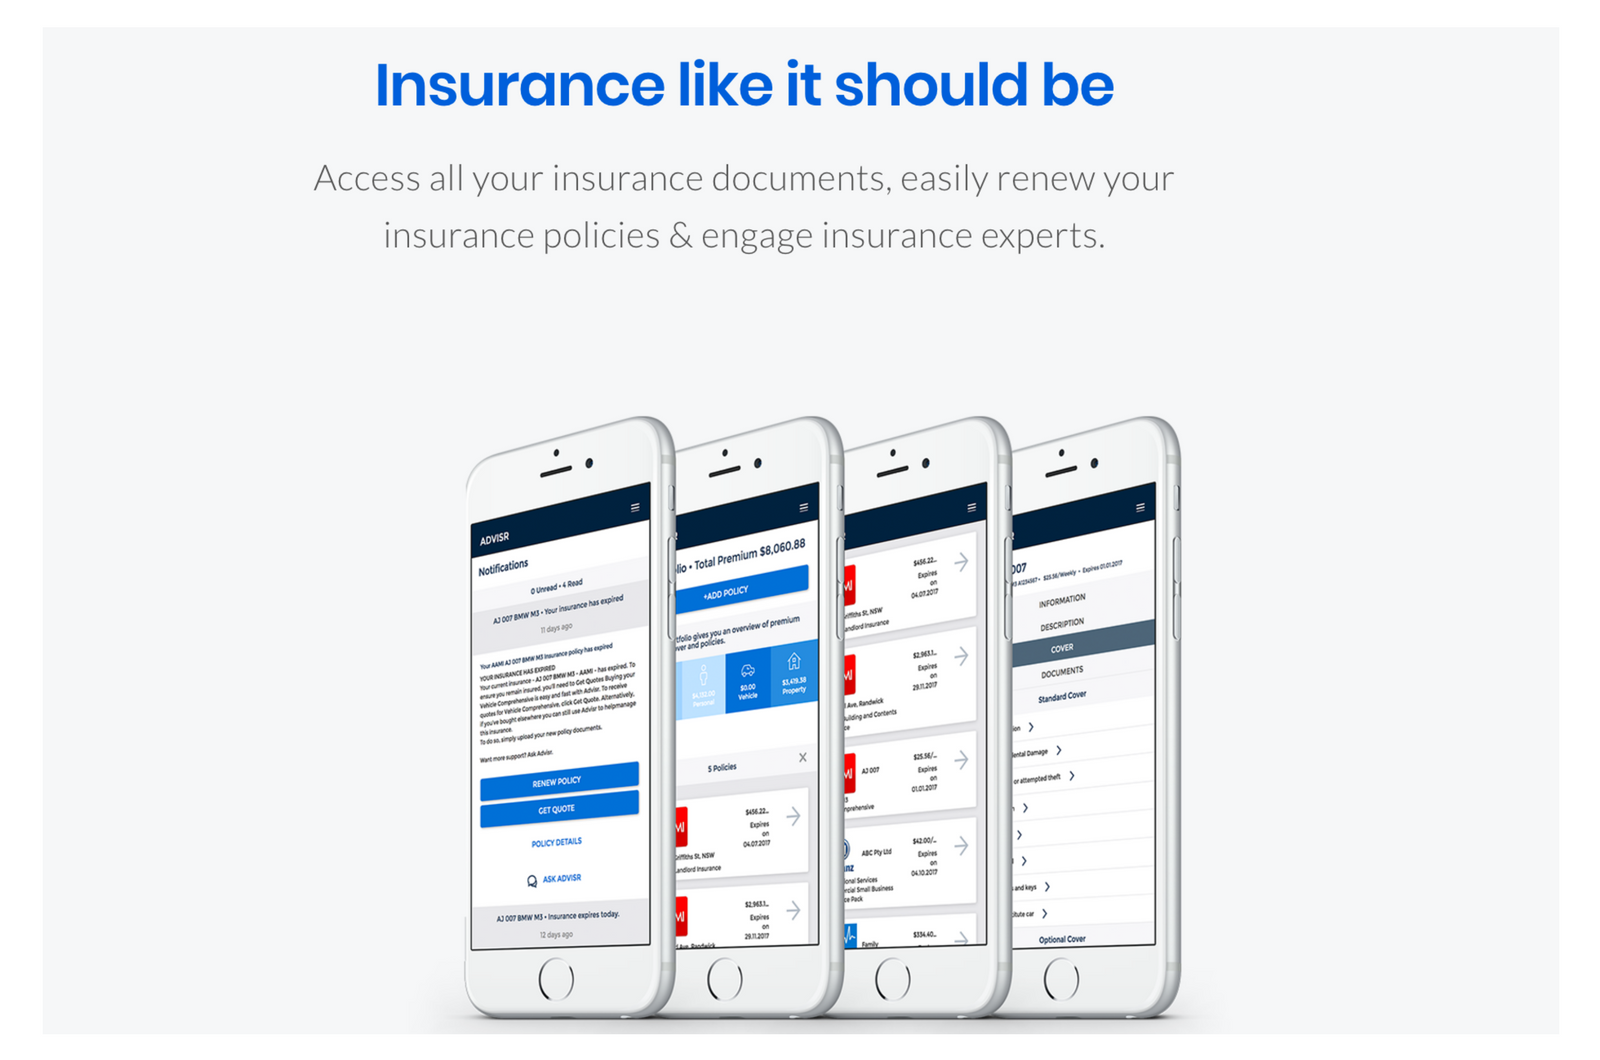 Advisr - Insurance Like It Should Be